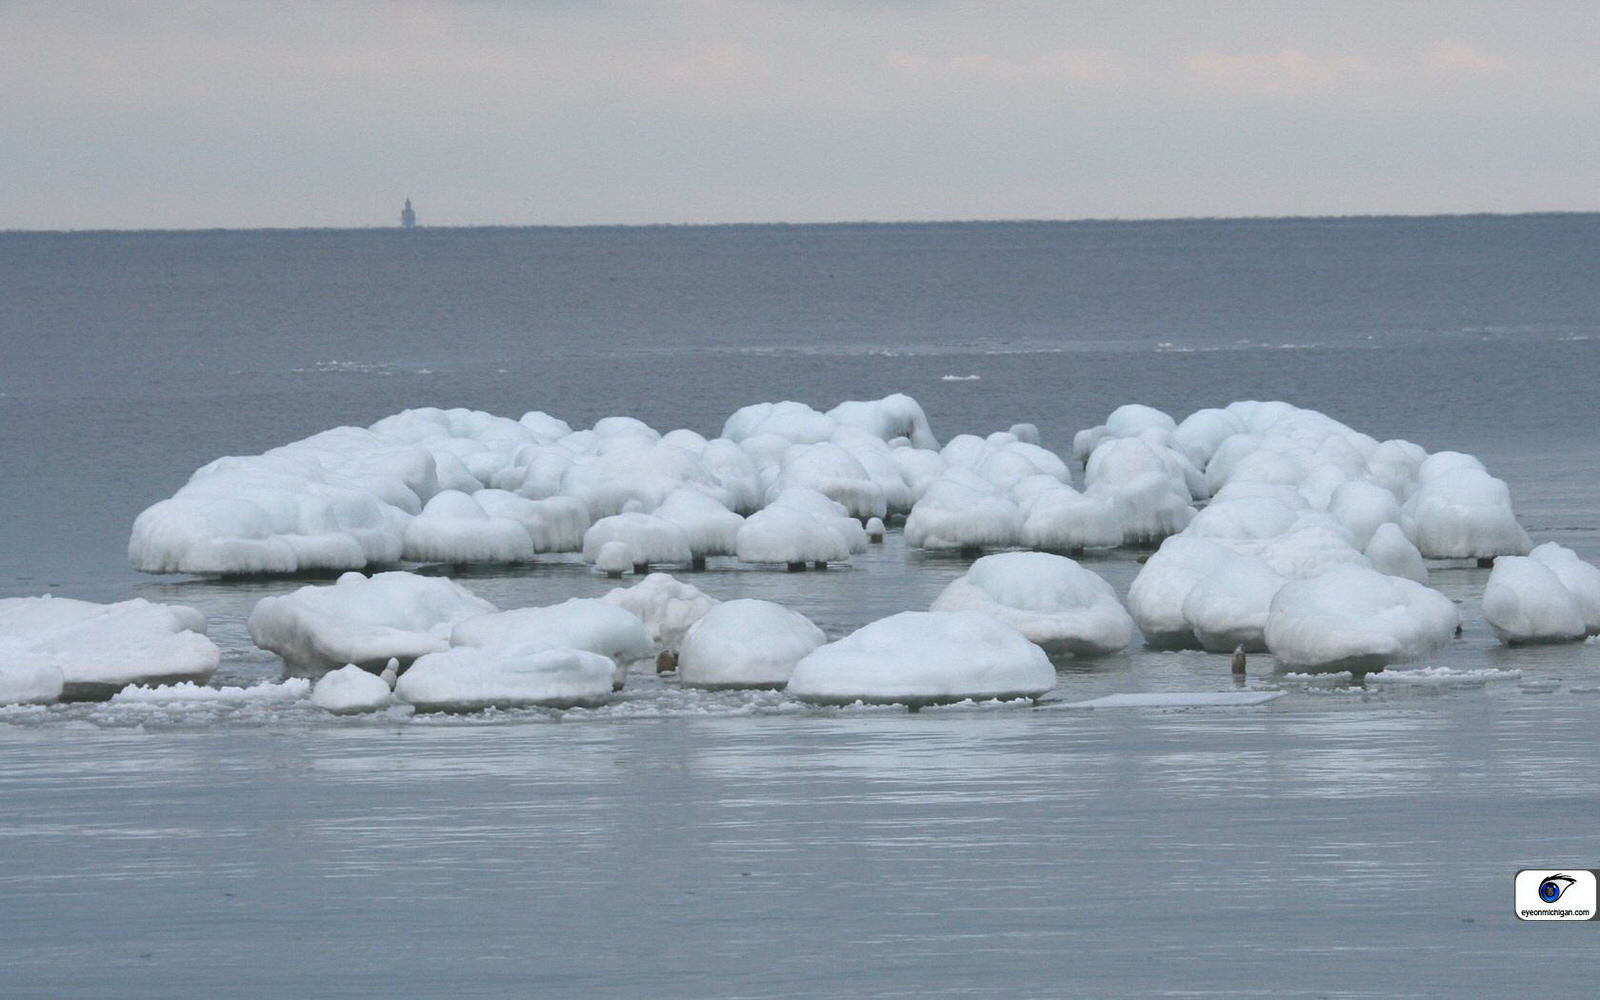 photo: Ice on Lake Michigan. Photo by Eye on Michigan.